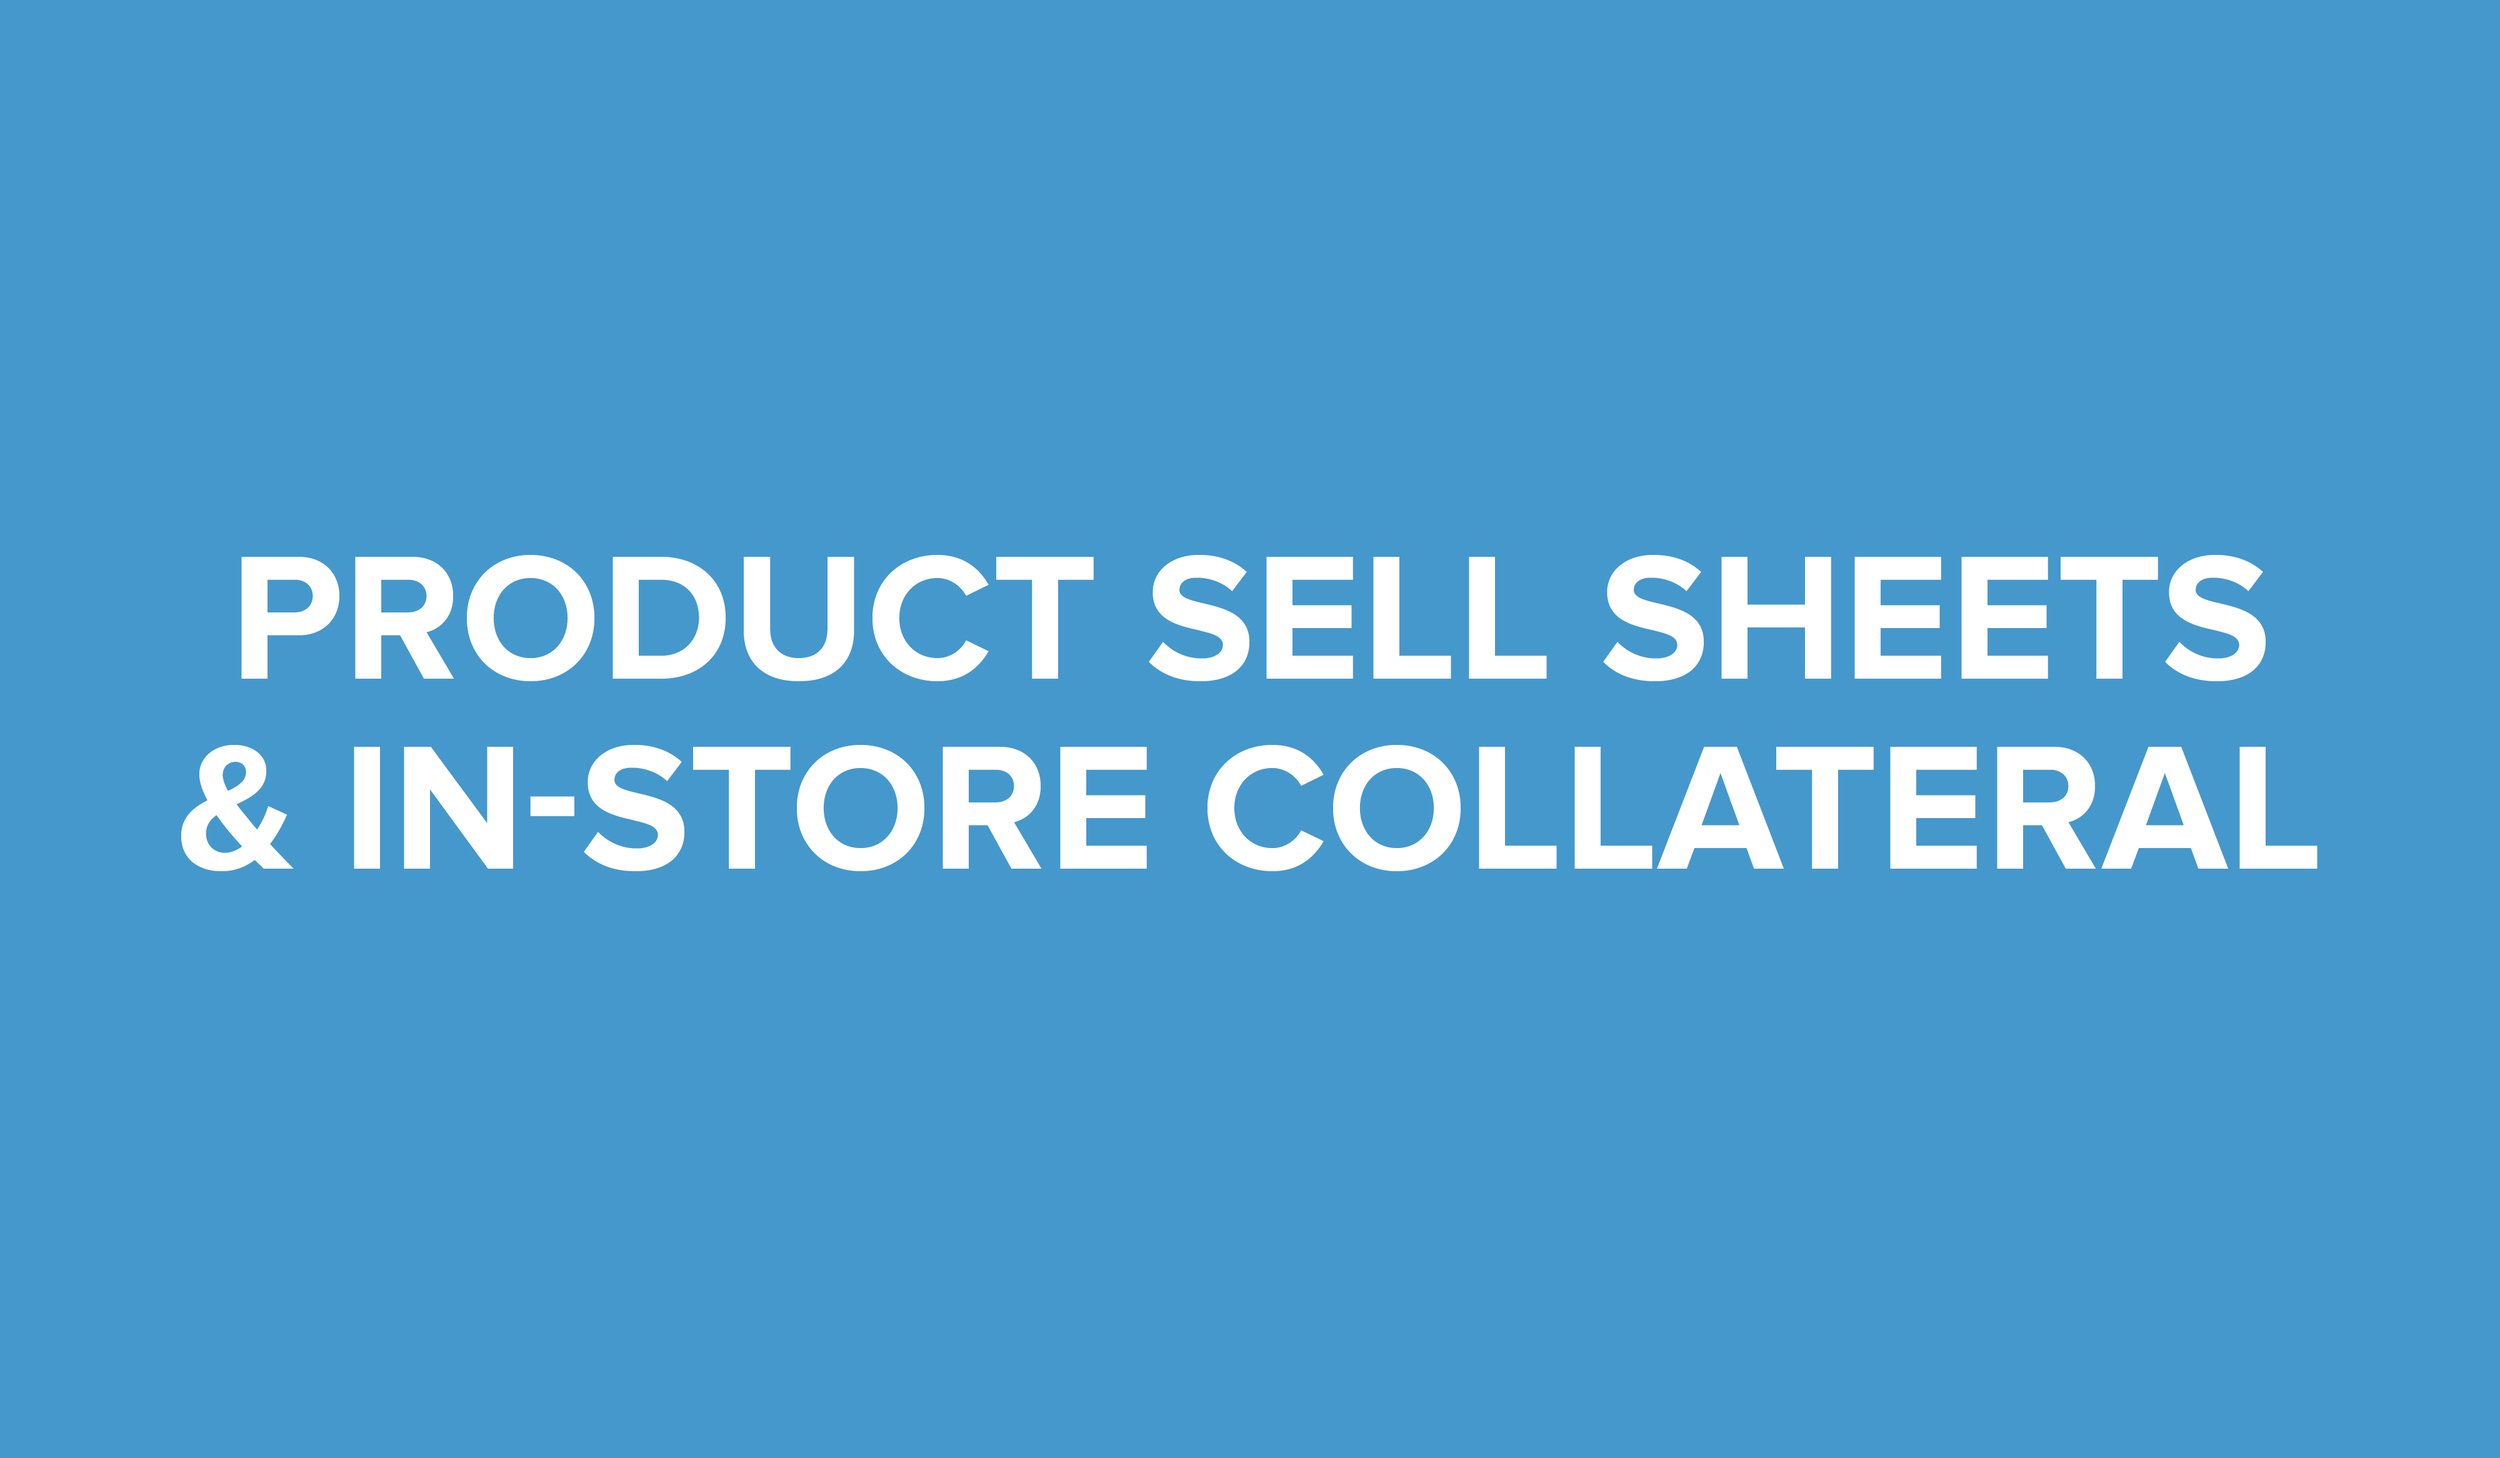 LMAX Collection - Product Launch Package Buttons v1.1_Product Sell Sheets & In-Store Collateral.jpg